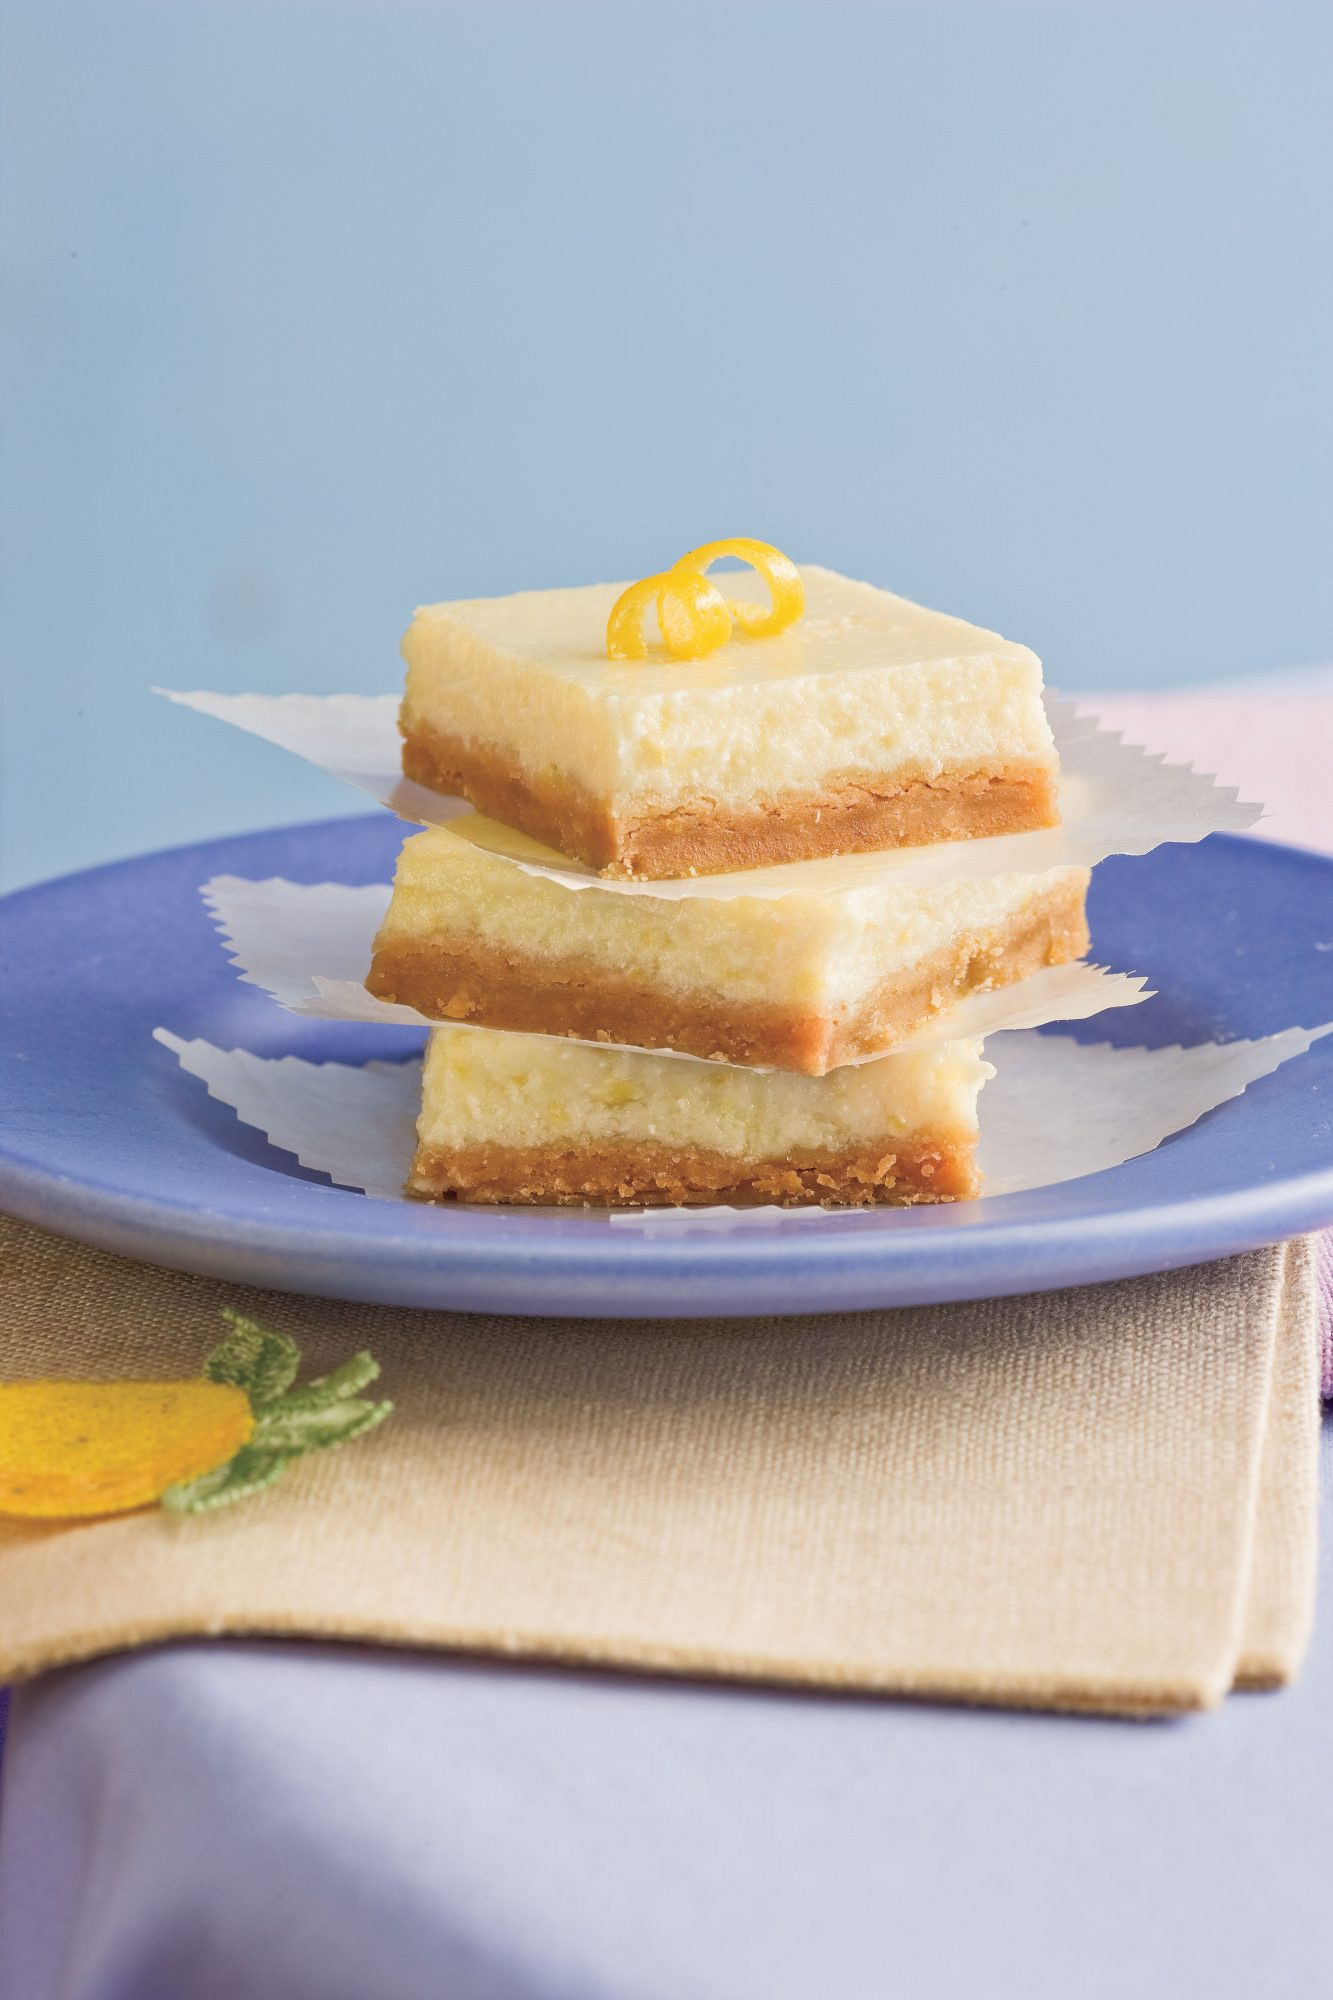 Healthy Desserts: Lemon-Cheesecake Bars